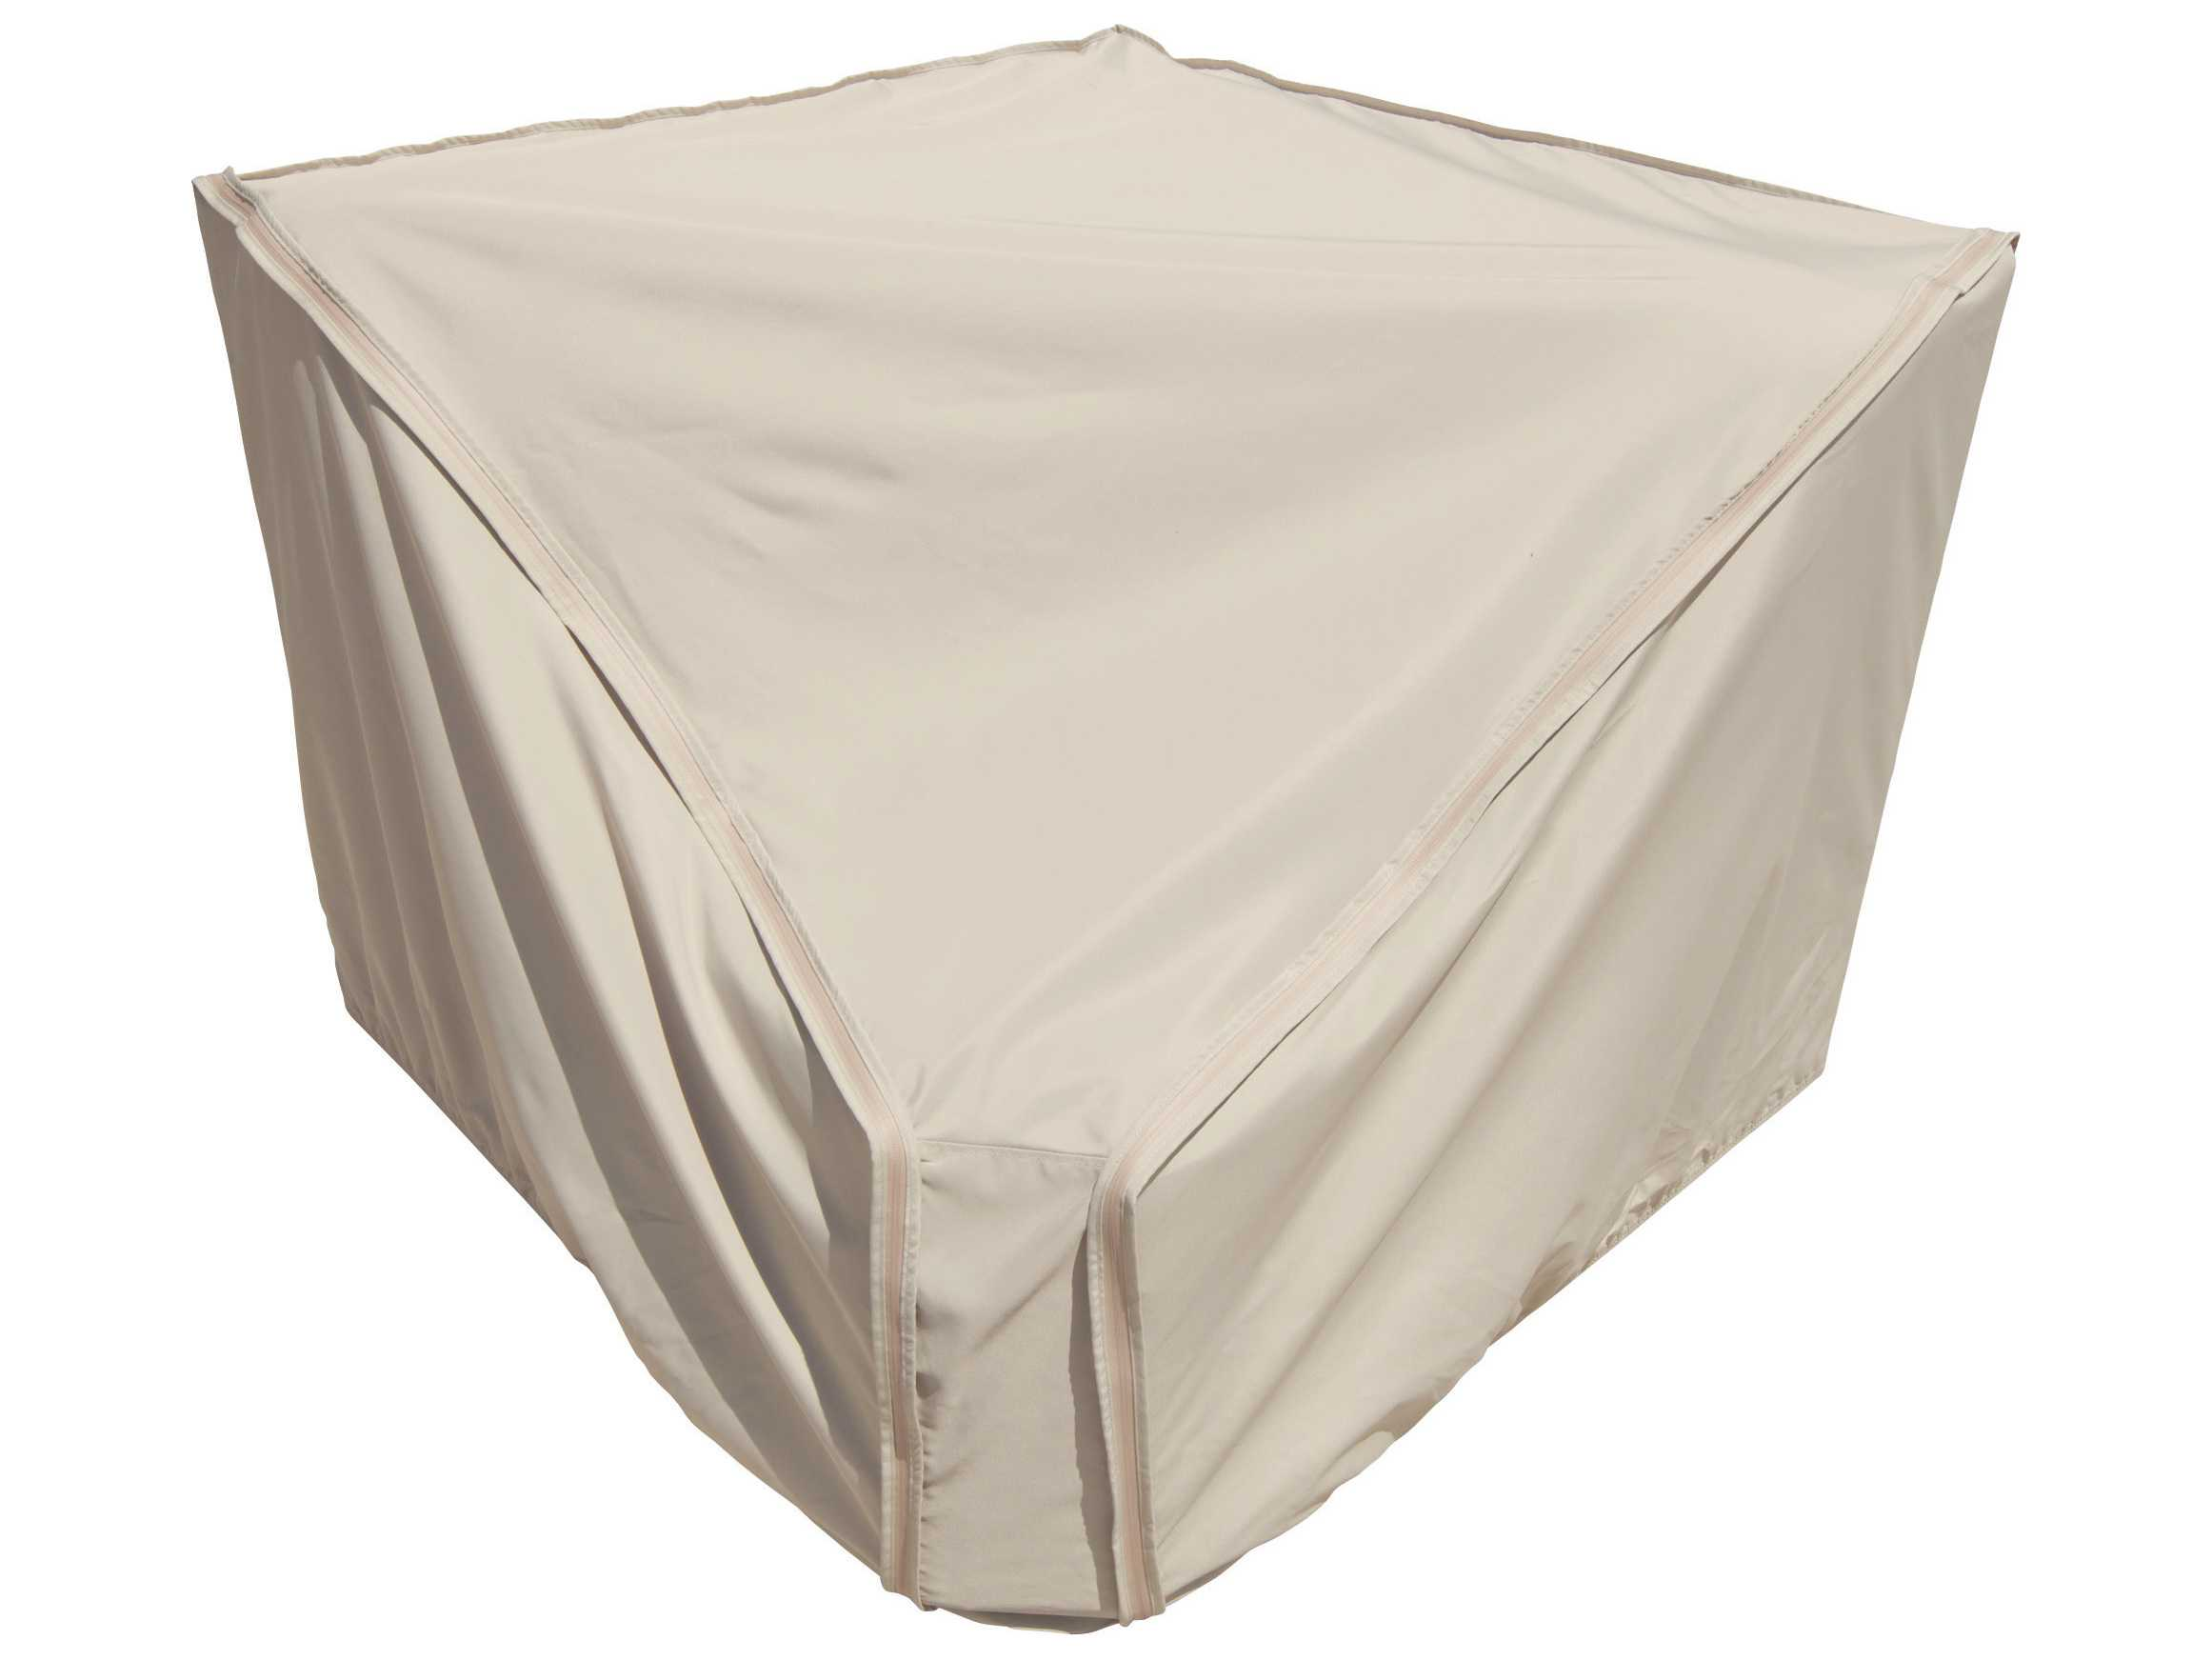 Treasure garden modular corner sectional cover cp304 for Treasure garden patio furniture covers